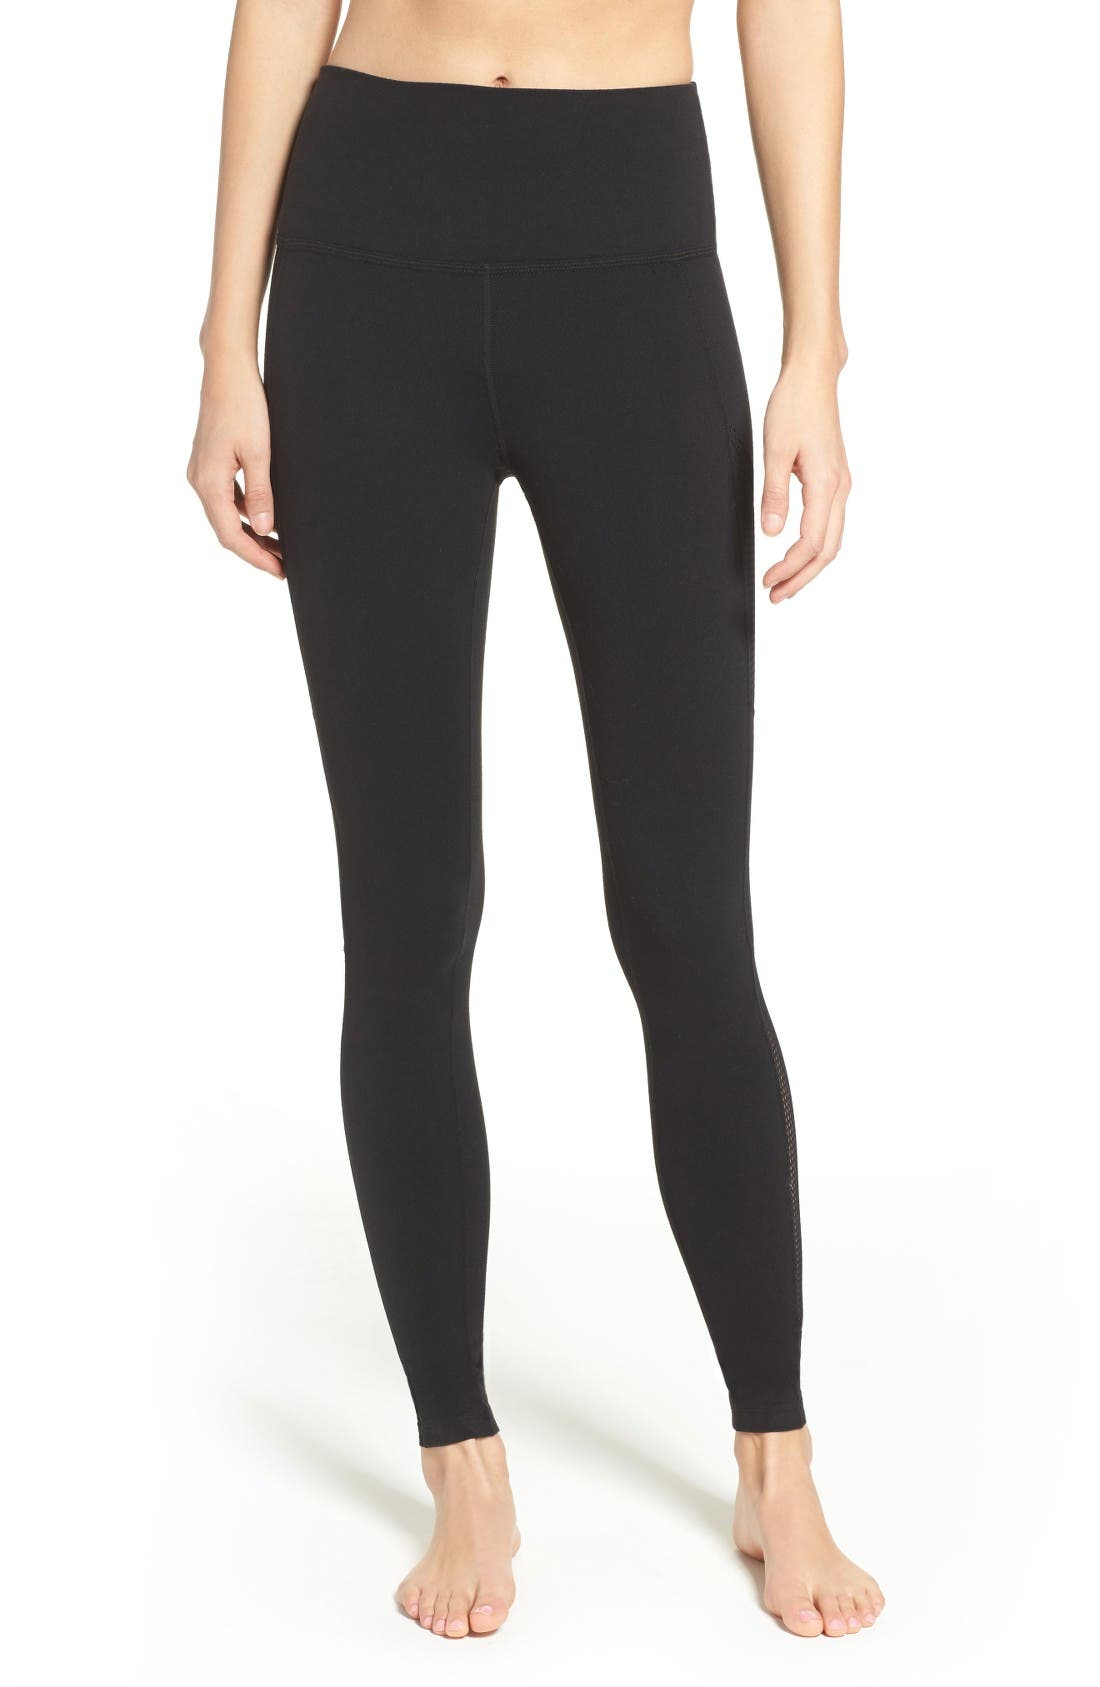 BEYOND YOGA Mesh Inset High Waist Leggings